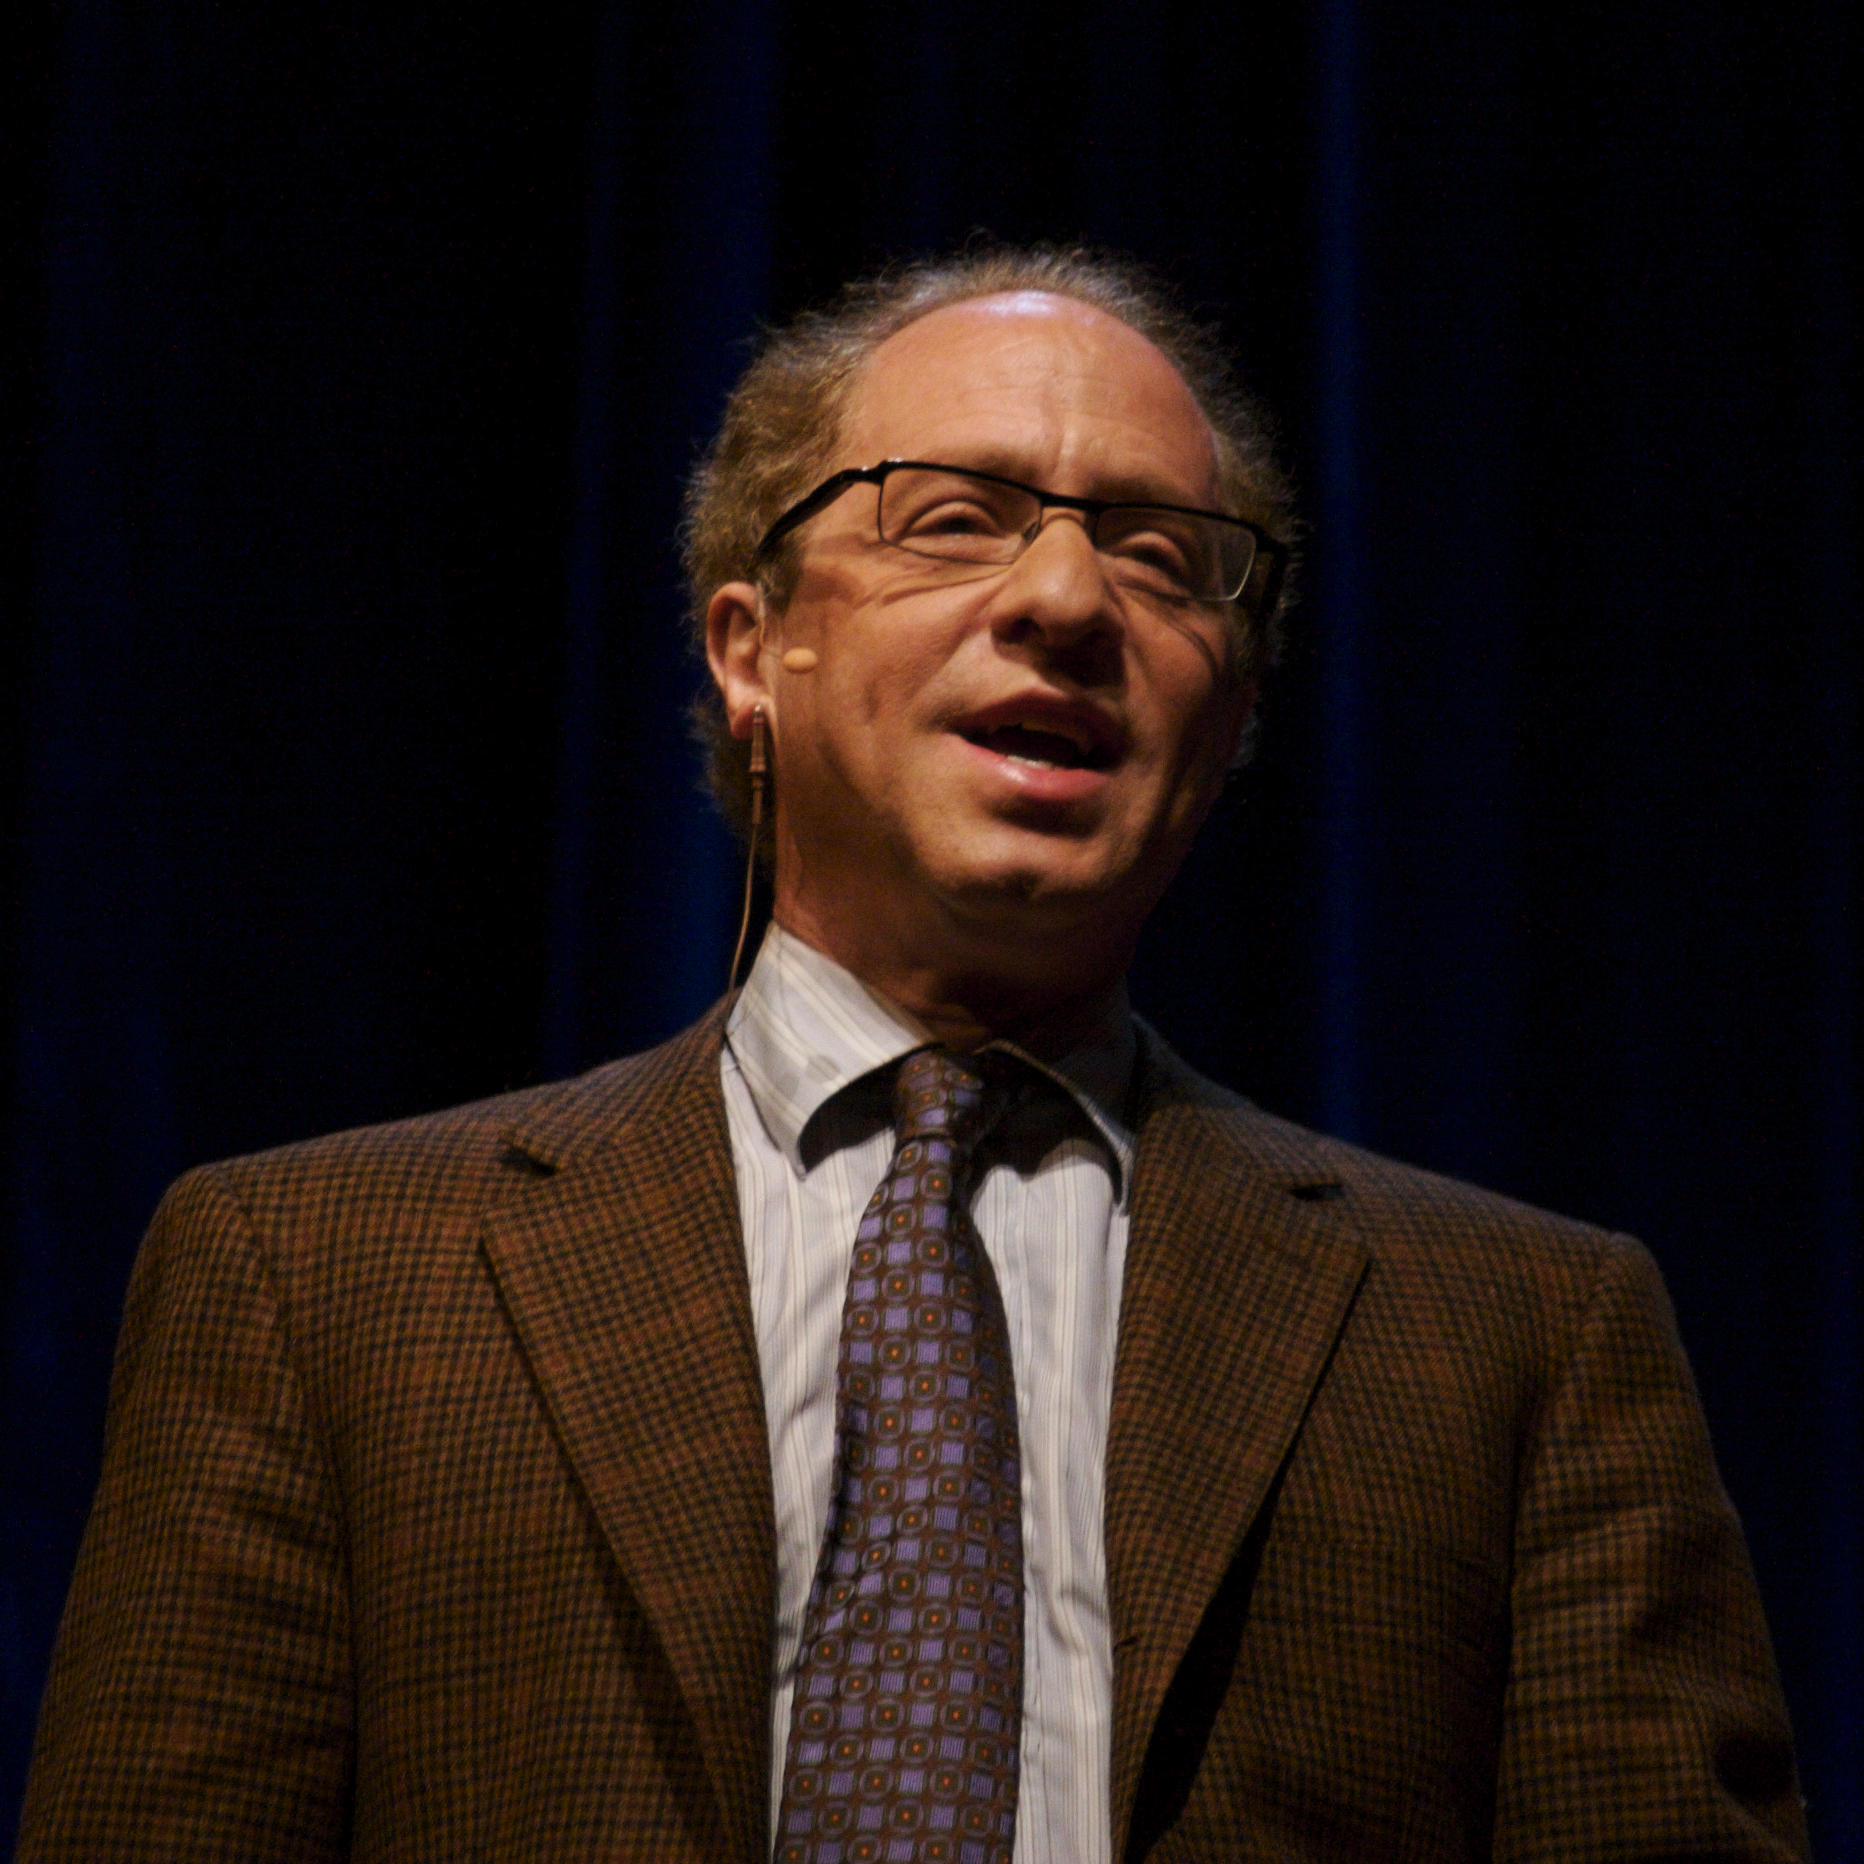 Predictions made by Ray Kurzweil - Wikipedia